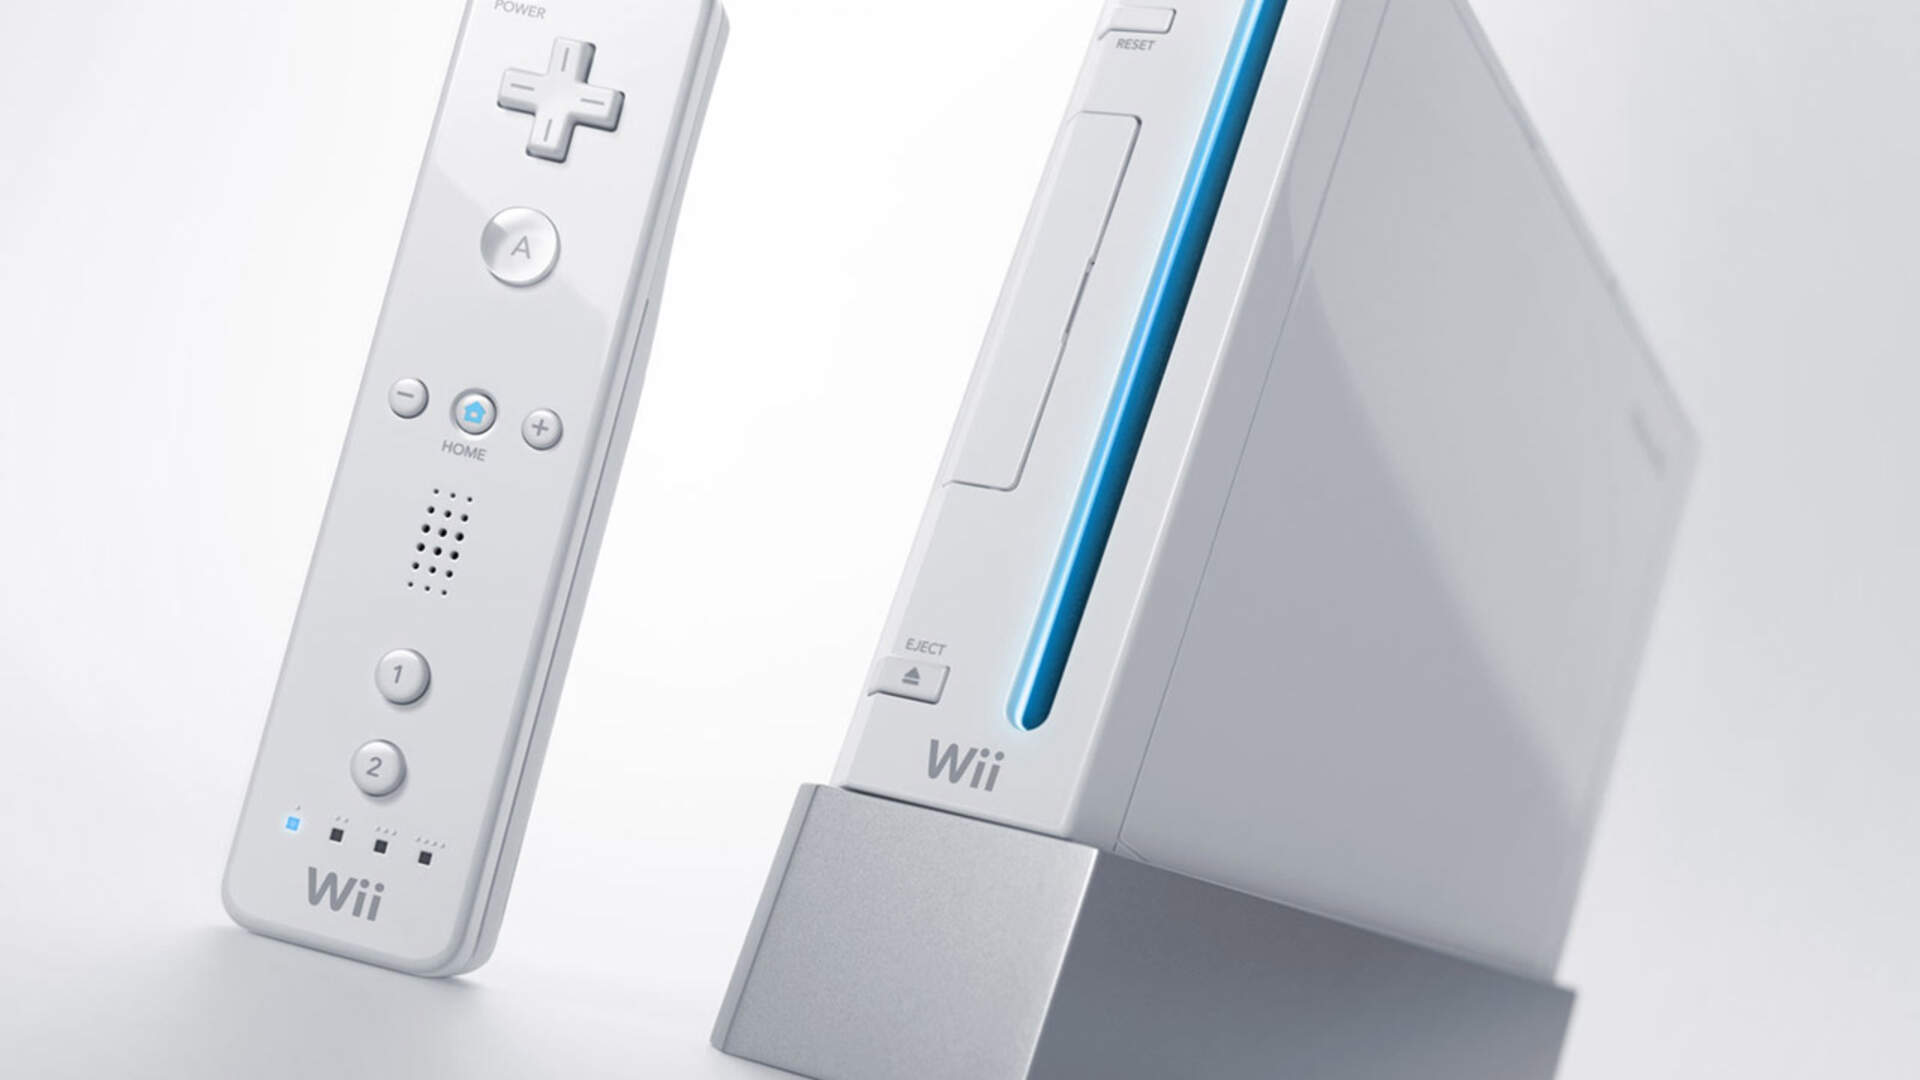 Wii Source Code Reportedly Revealed Through Nintendo Leaks